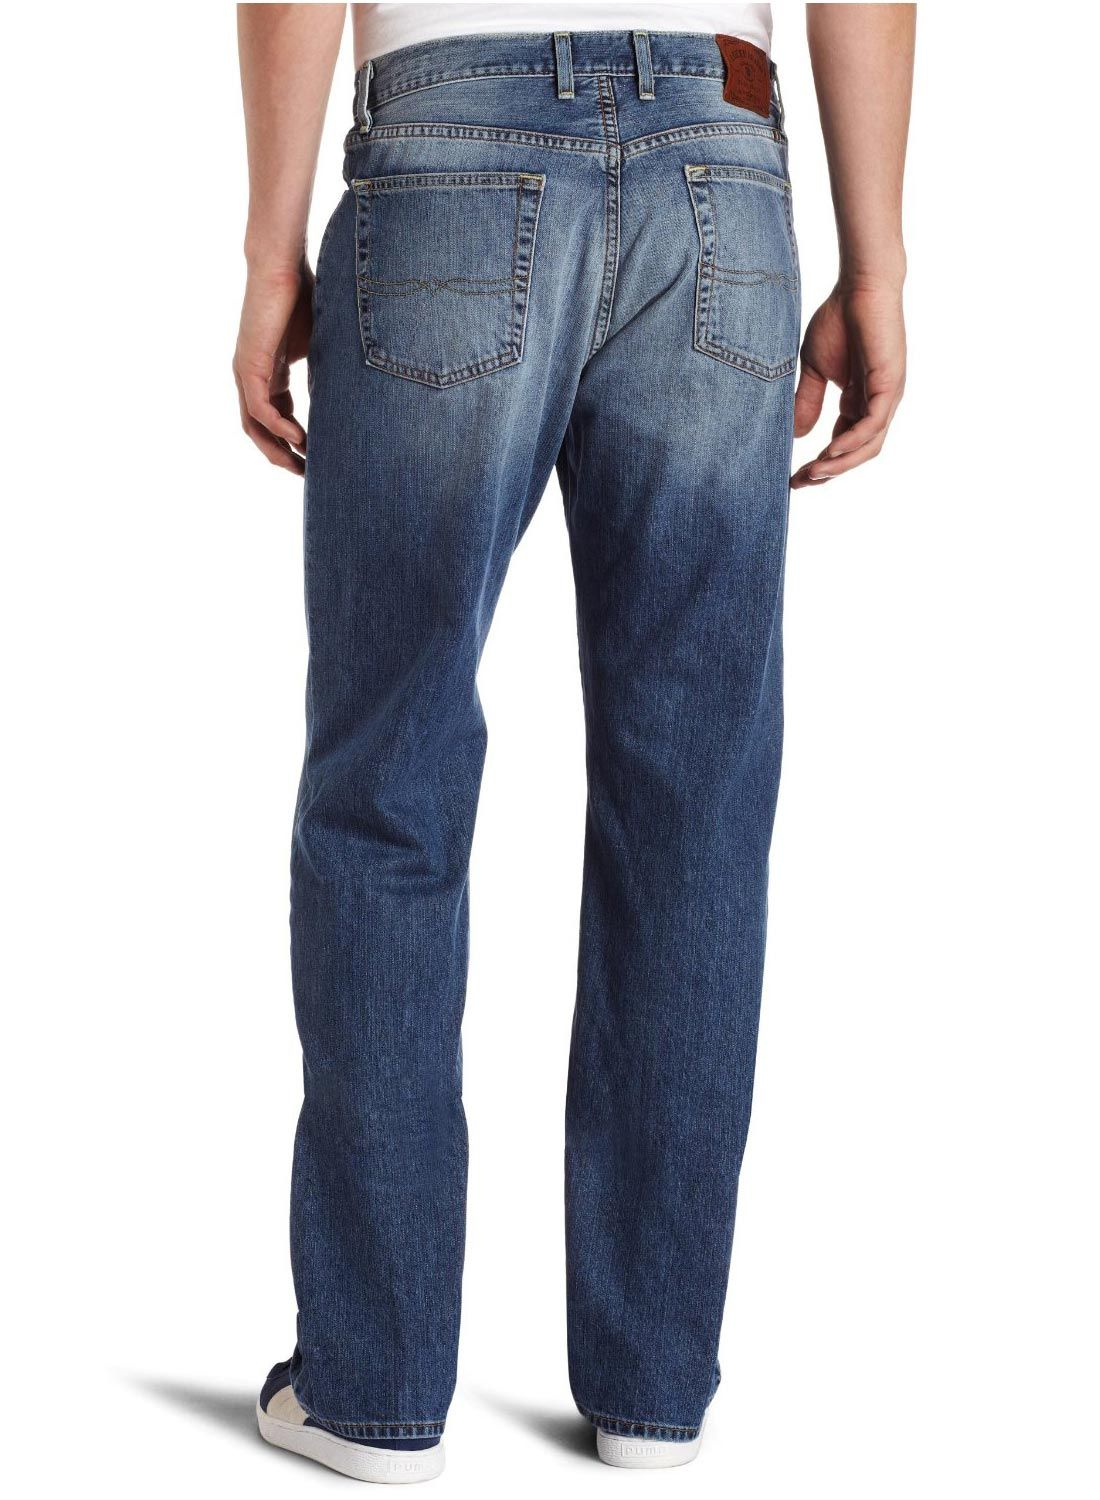 Lucky Brand 181 Relaxed Straight Jeans Mid Rise Mens Blue Jean OL